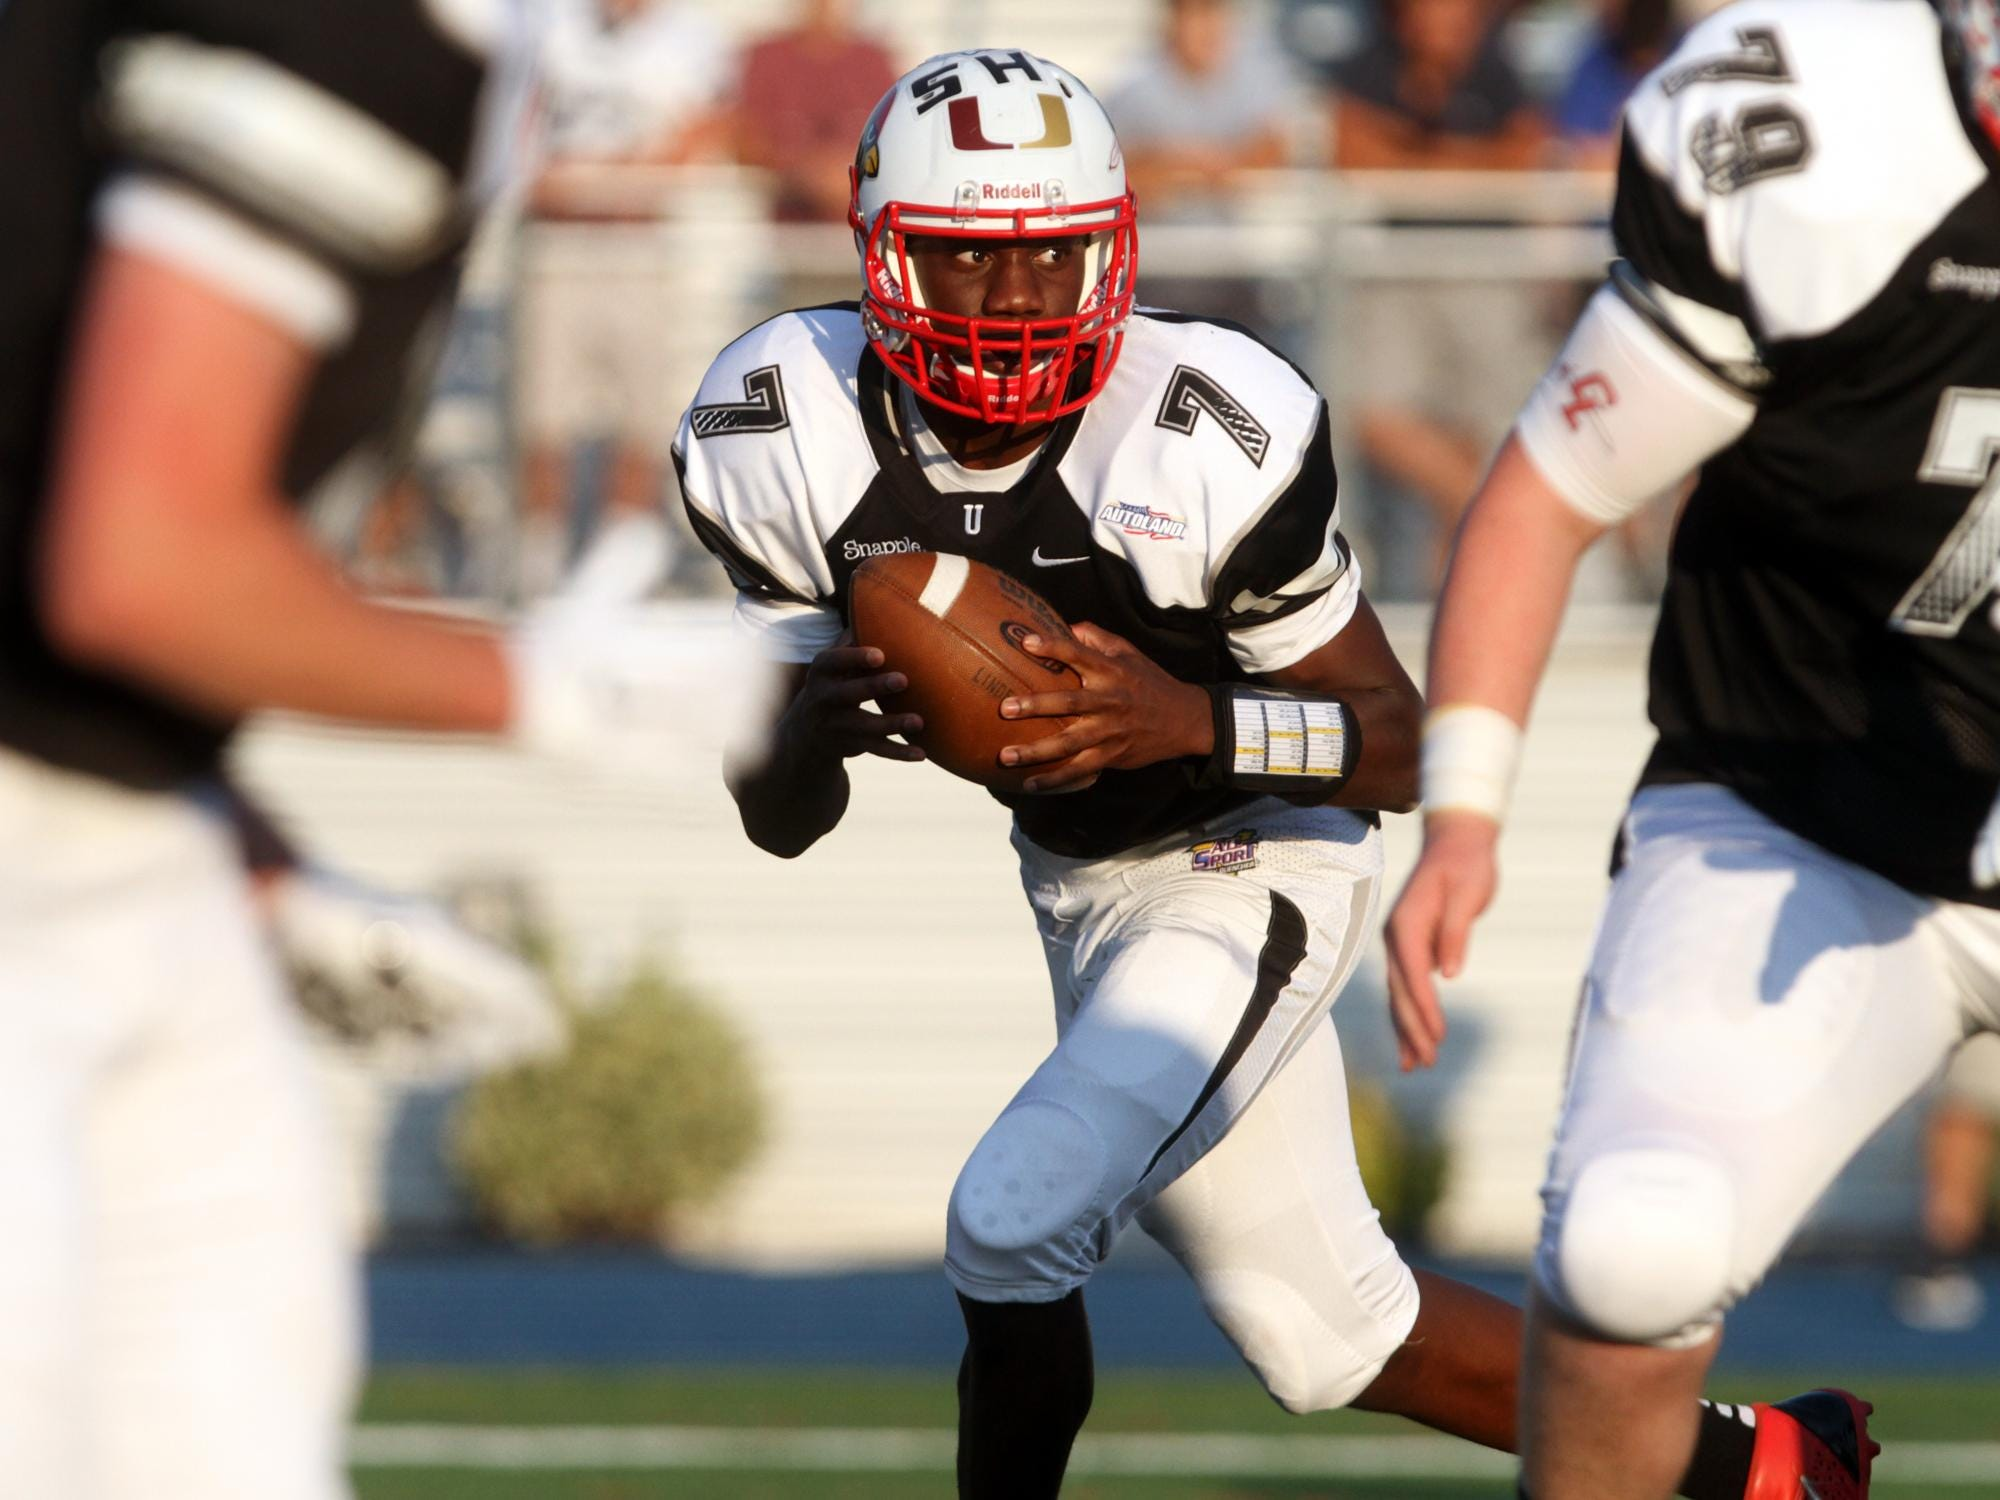 Union County quarterback Rohan Phillip of Plainfield drops back to pass during Snapple Bowl XXII on Thursday at Kean University in Union.